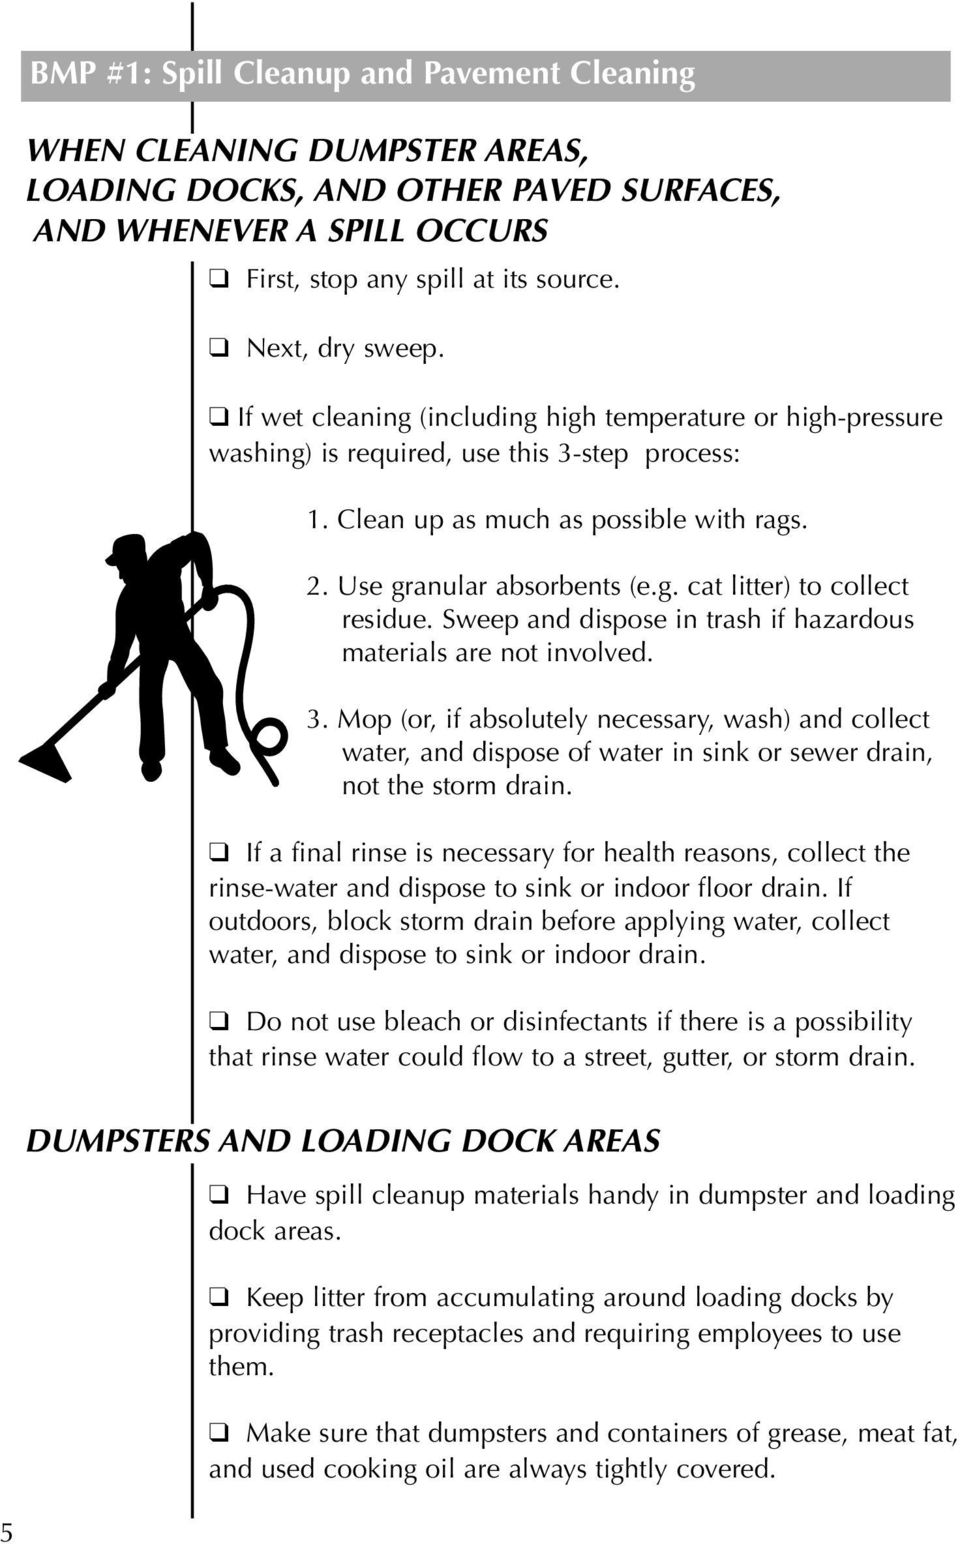 Sweep and dispose in trash if hazardous materials are not involved. 3. Mop (or, if absolutely necessary, wash) and collect water, and dispose of water in sink or sewer drain, not the storm drain.